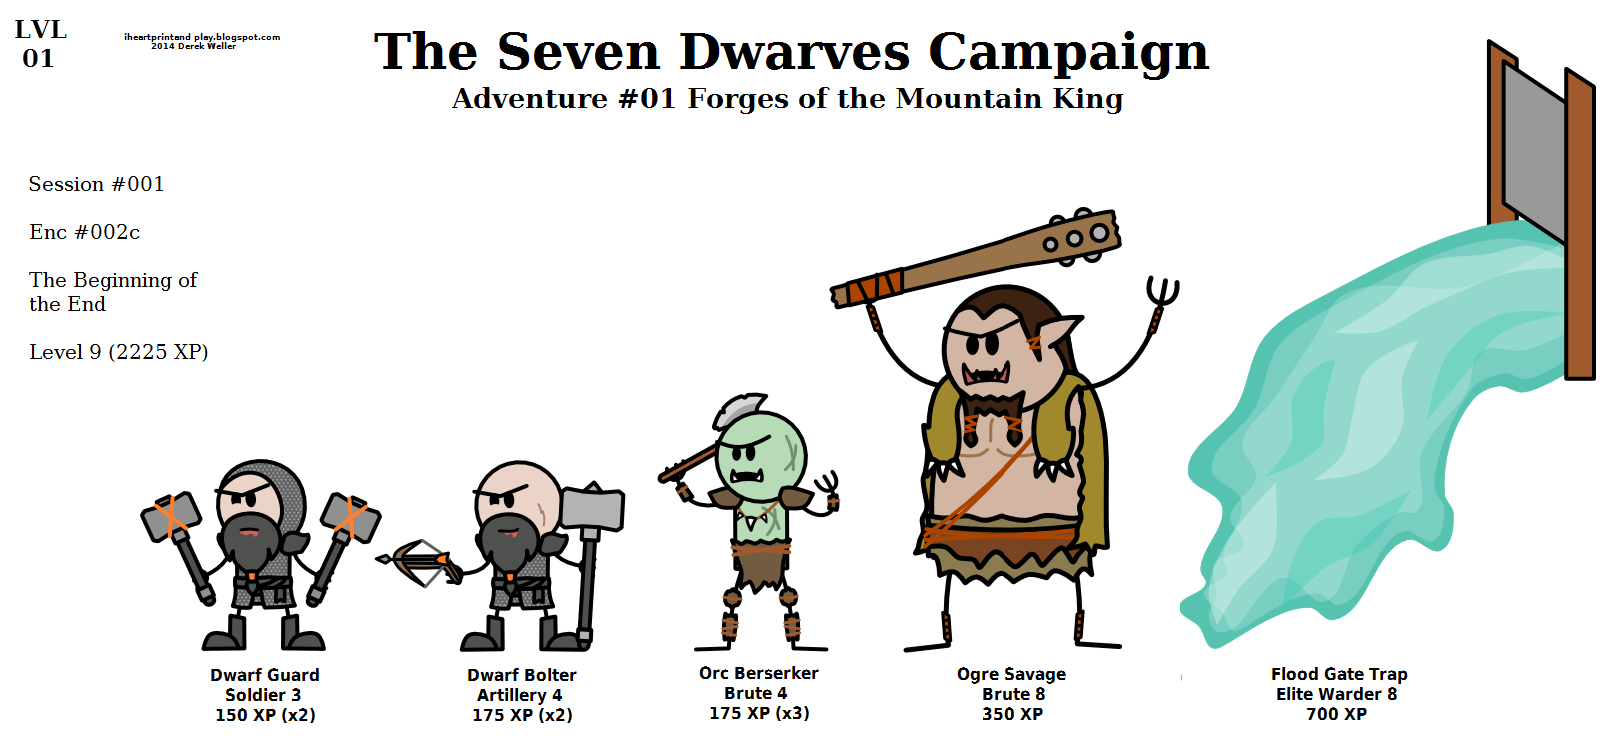 7Dwarves__004.002c_Beginning.png